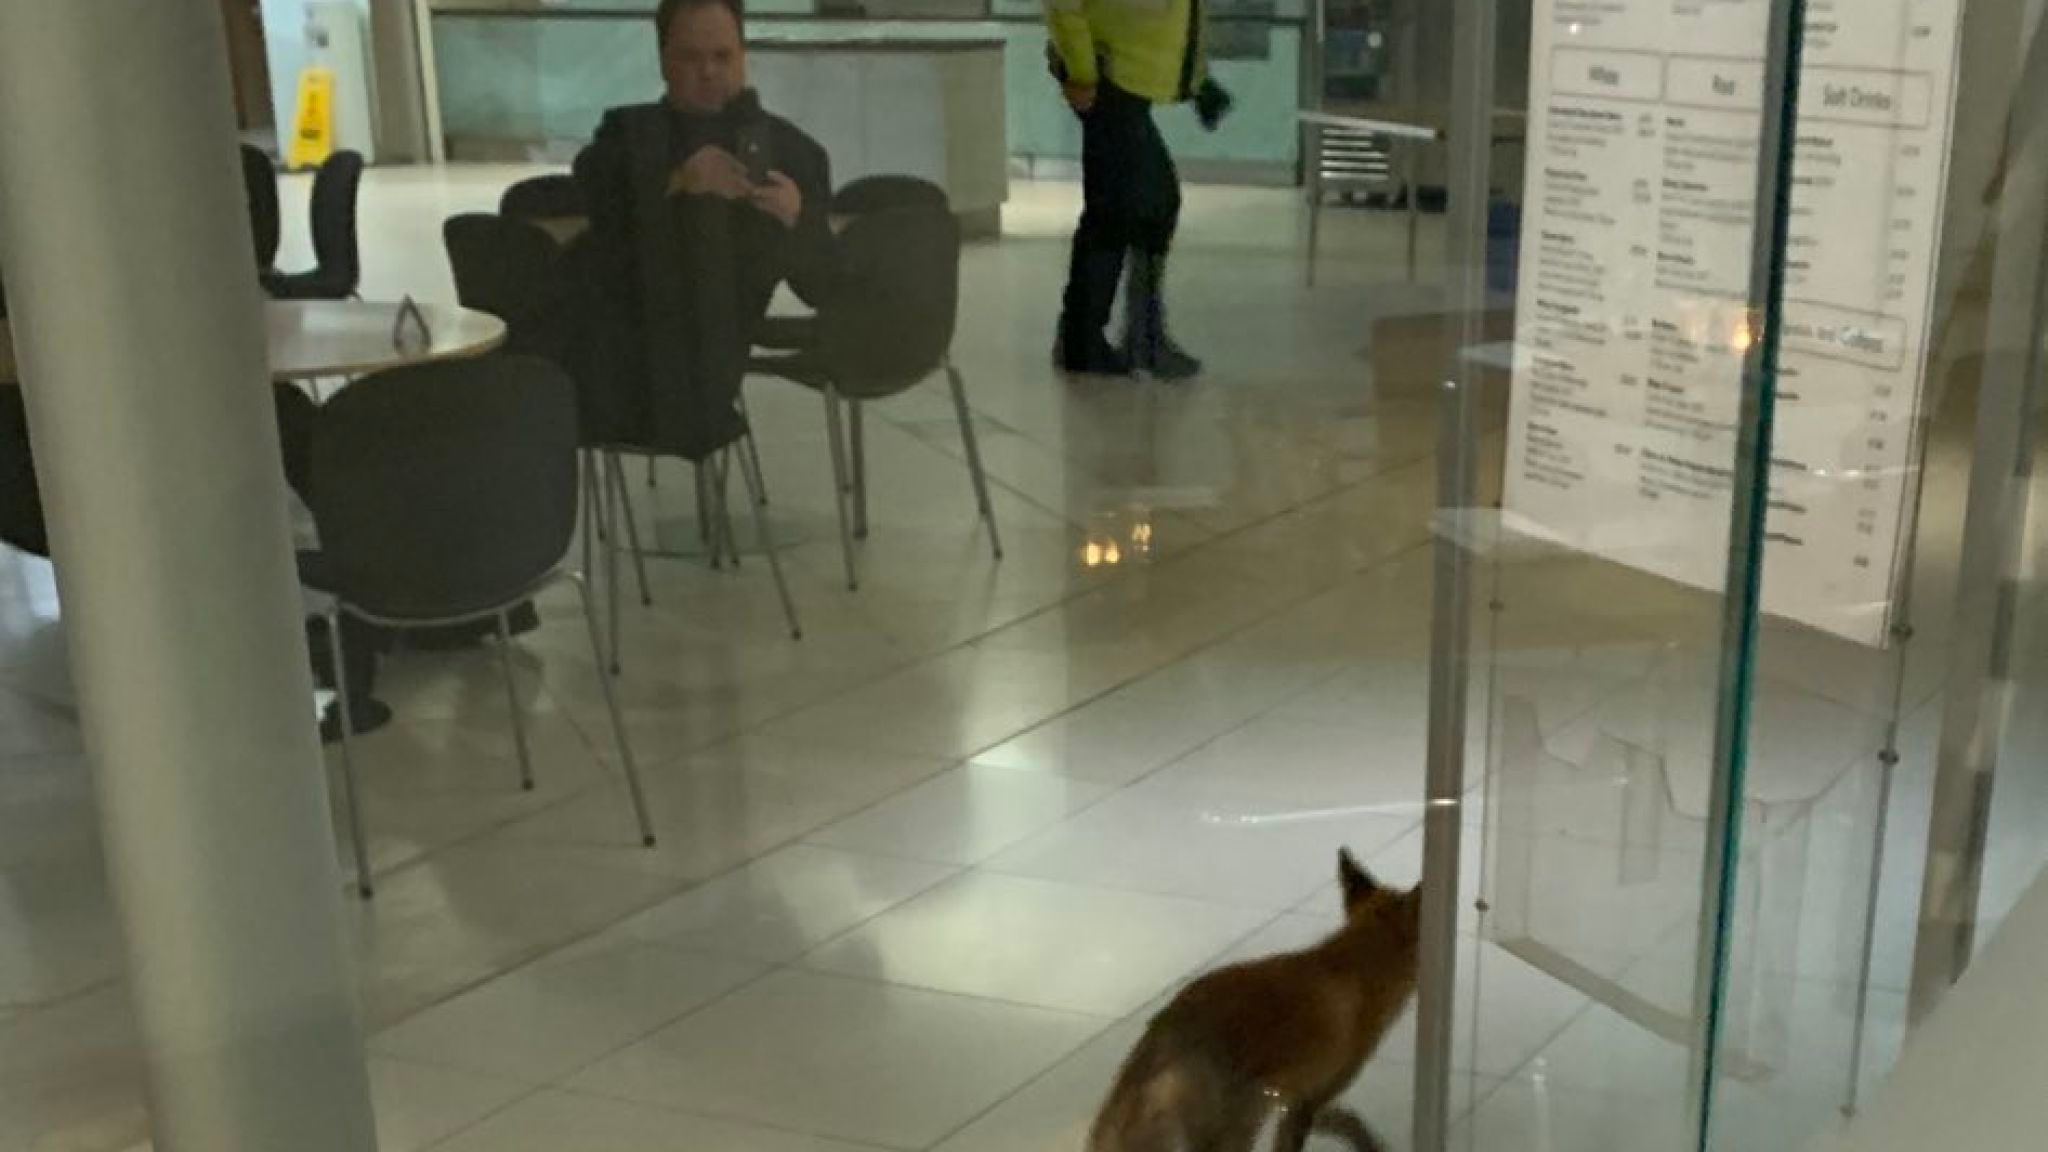 Fox spotted near one of the cafes in Portcullis House, parliament